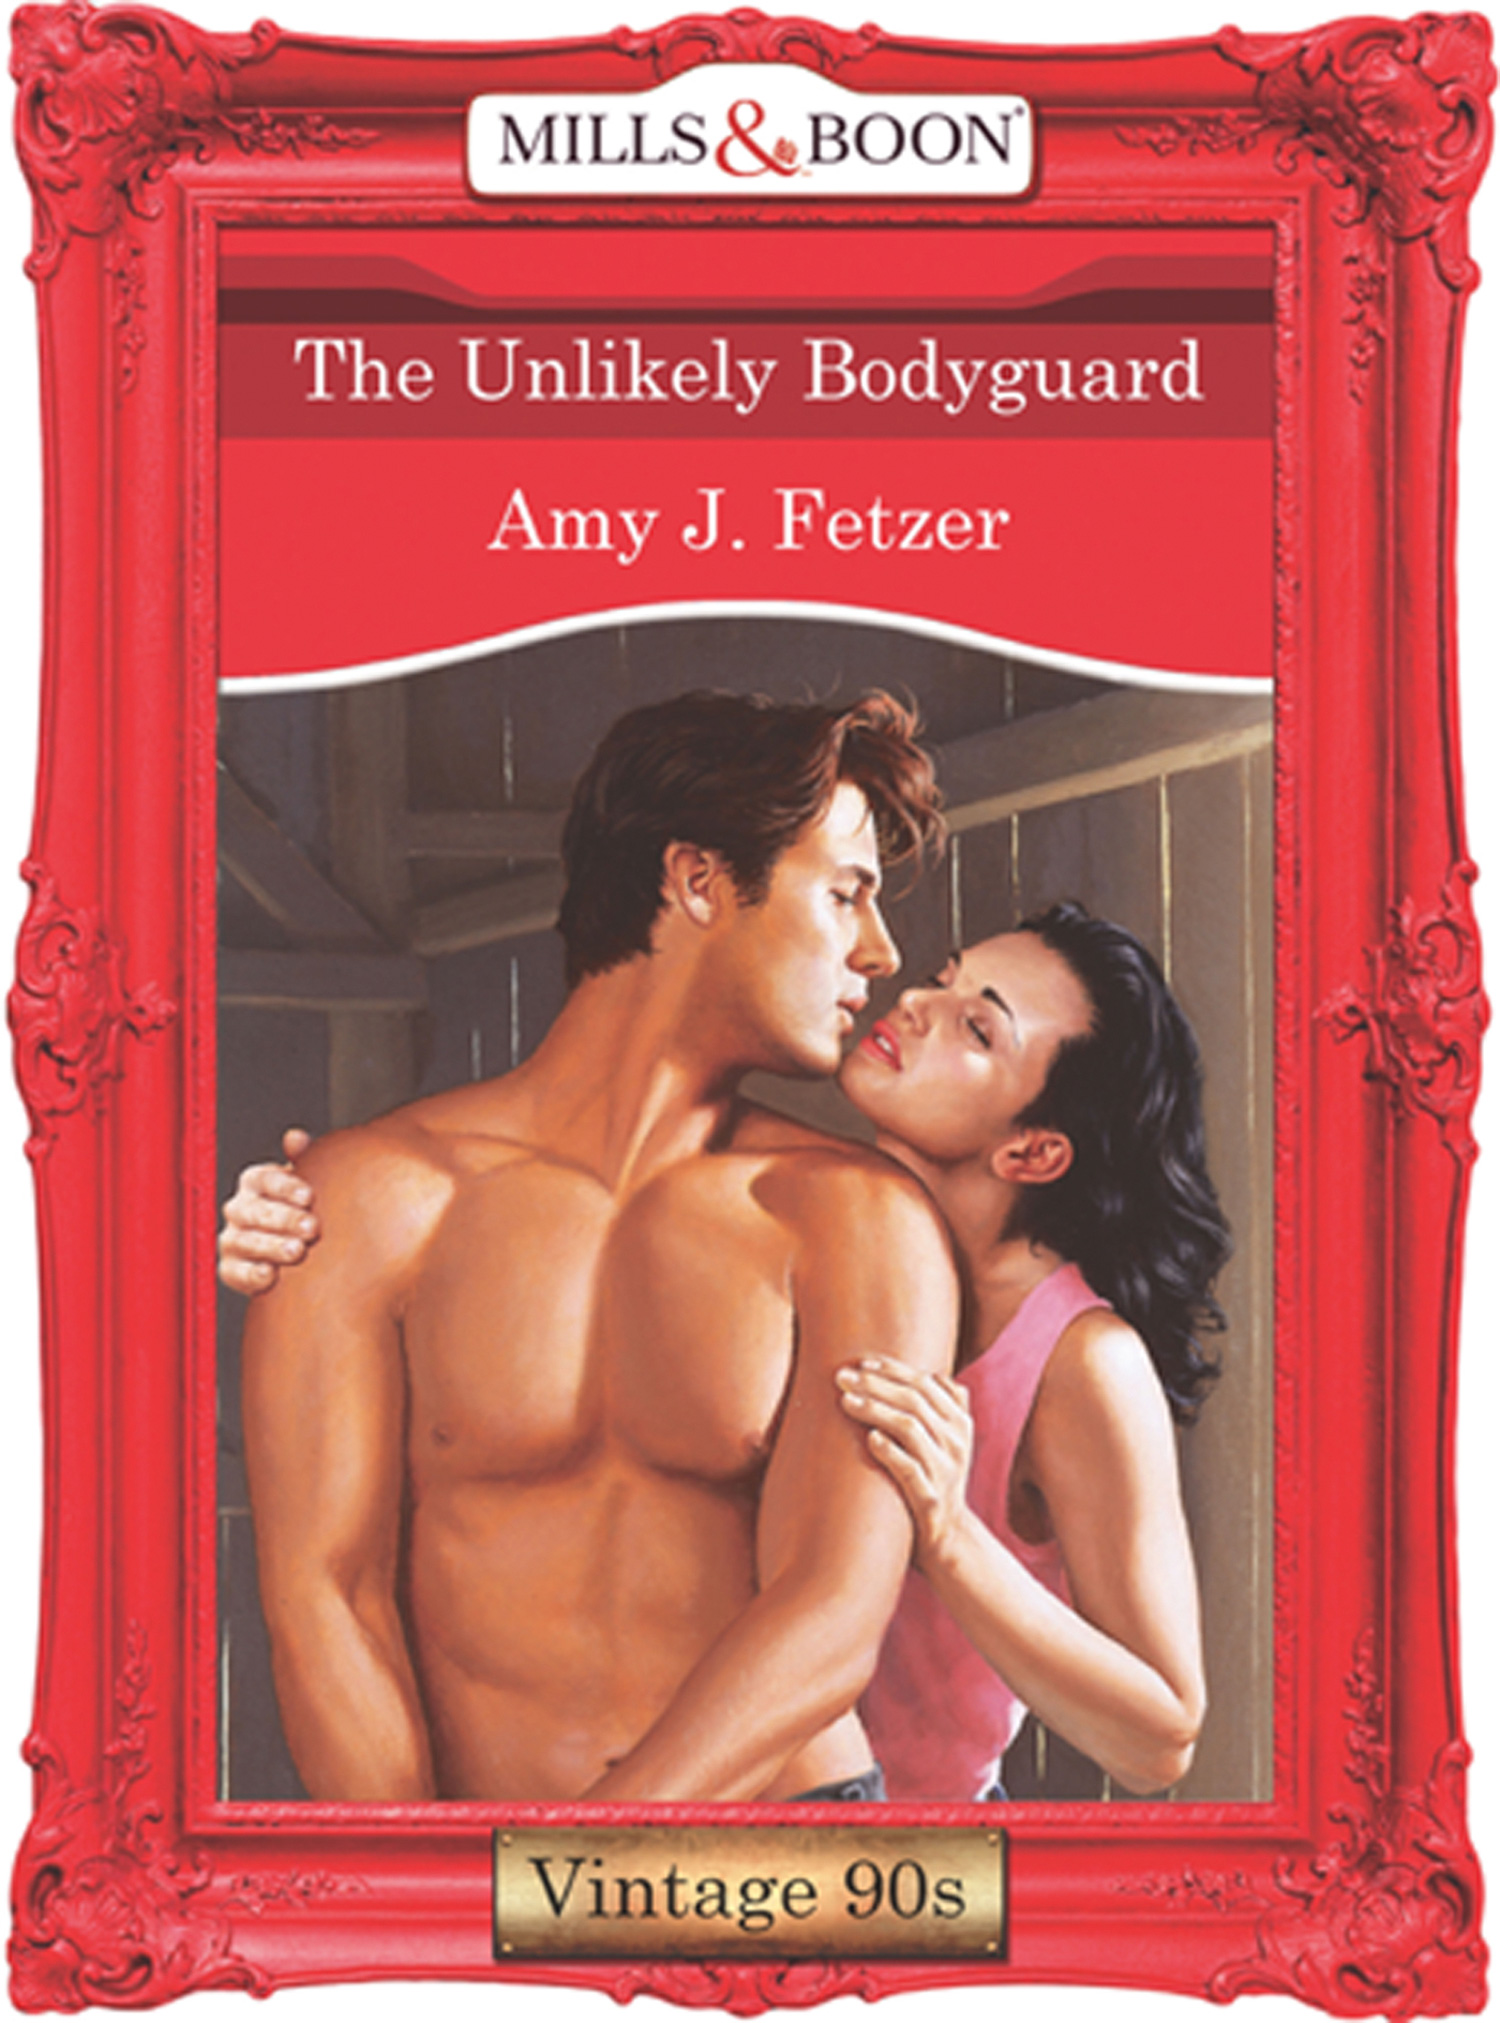 The Unlikely Bodyguard